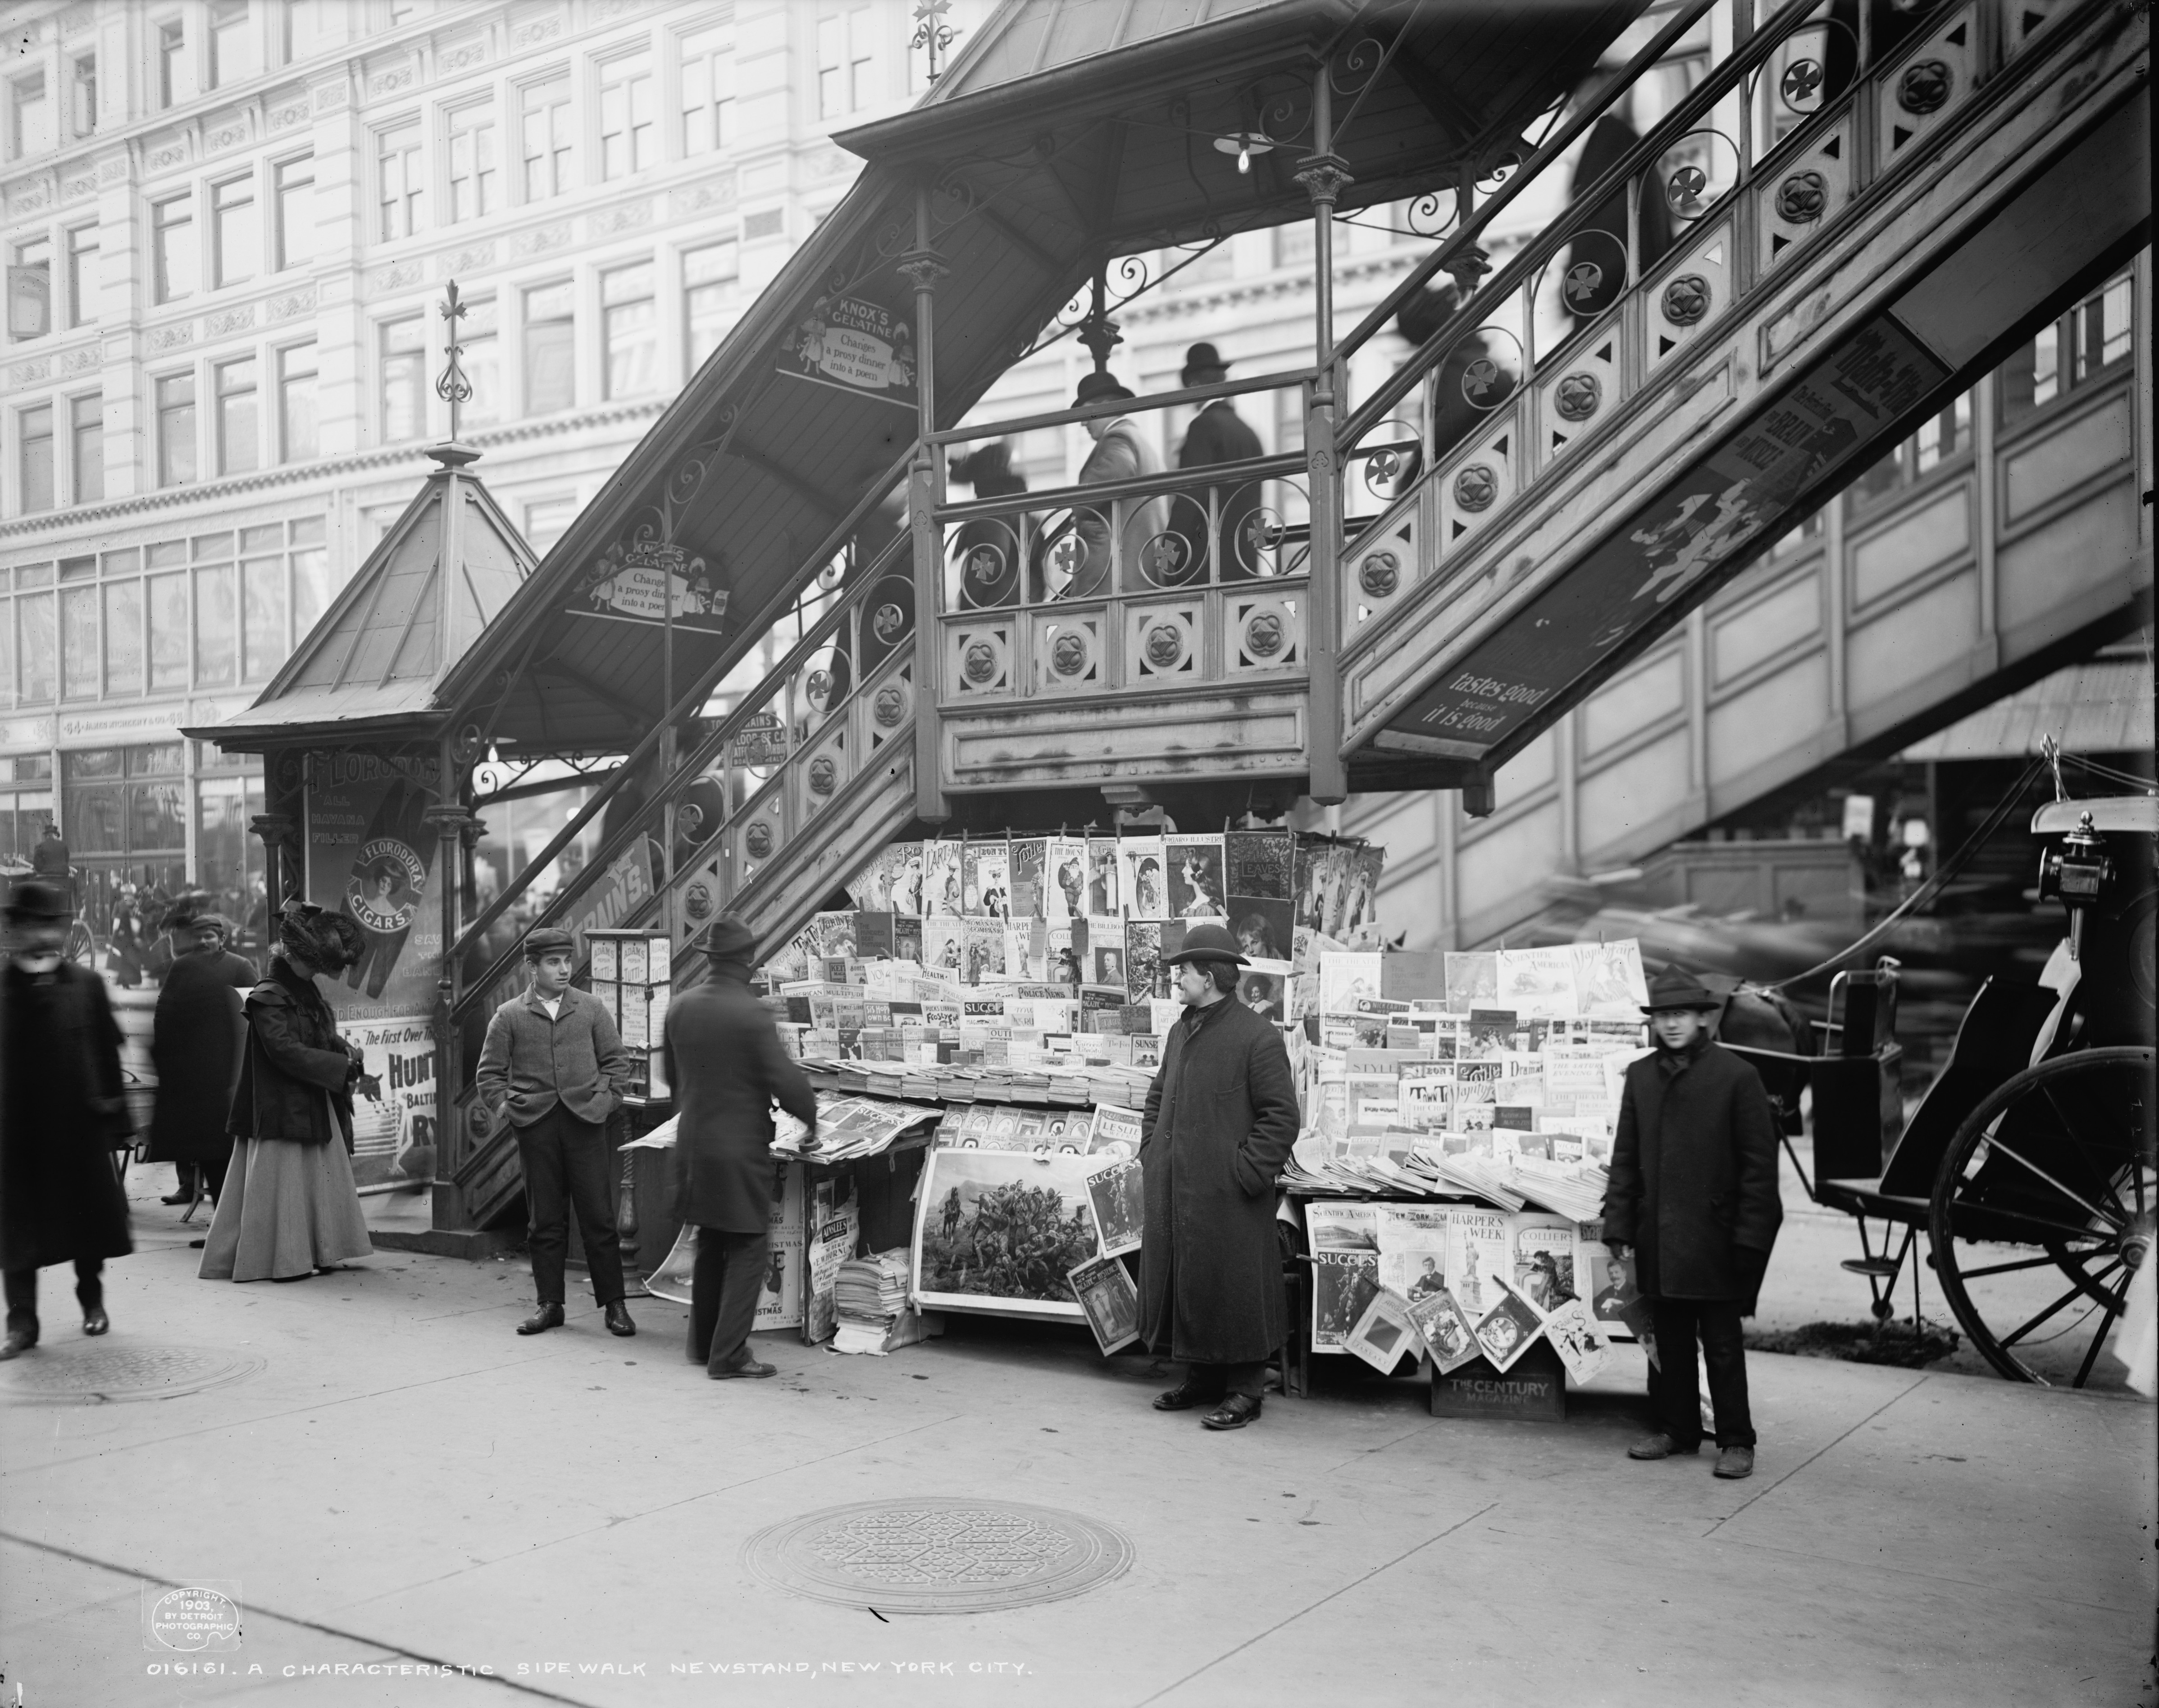 Old New York In Photos #99 - The New York City Newsstand